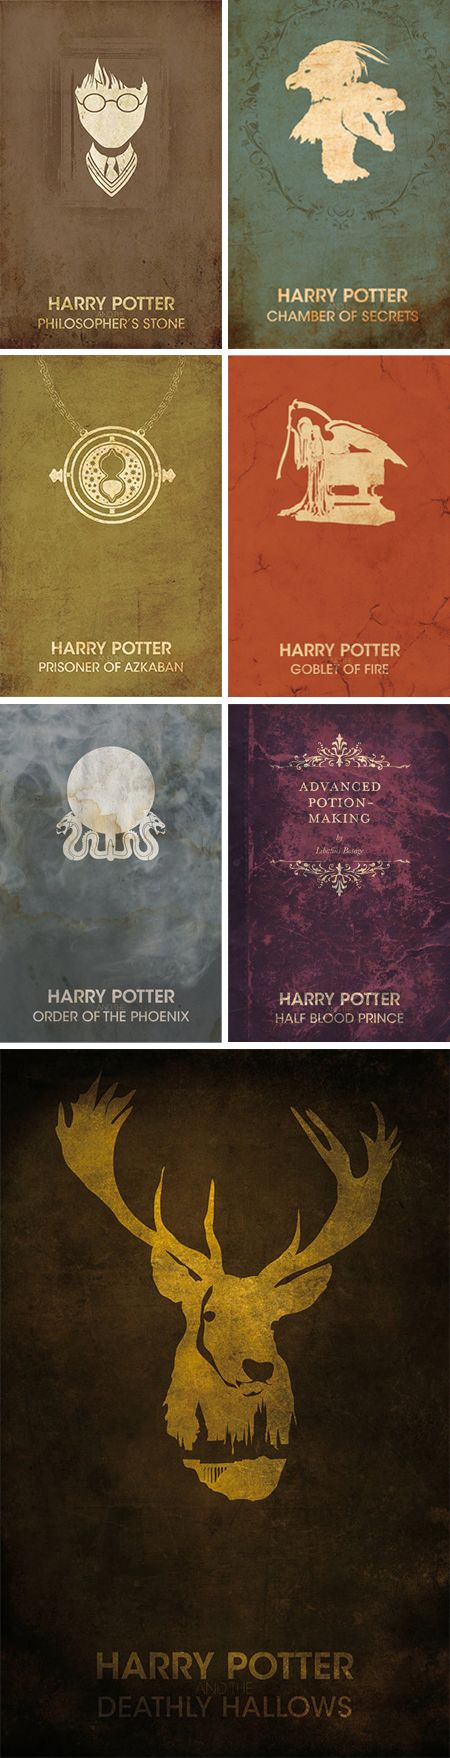 Minimalist Book Cover Quote : Harry potter minimalist posters pictures